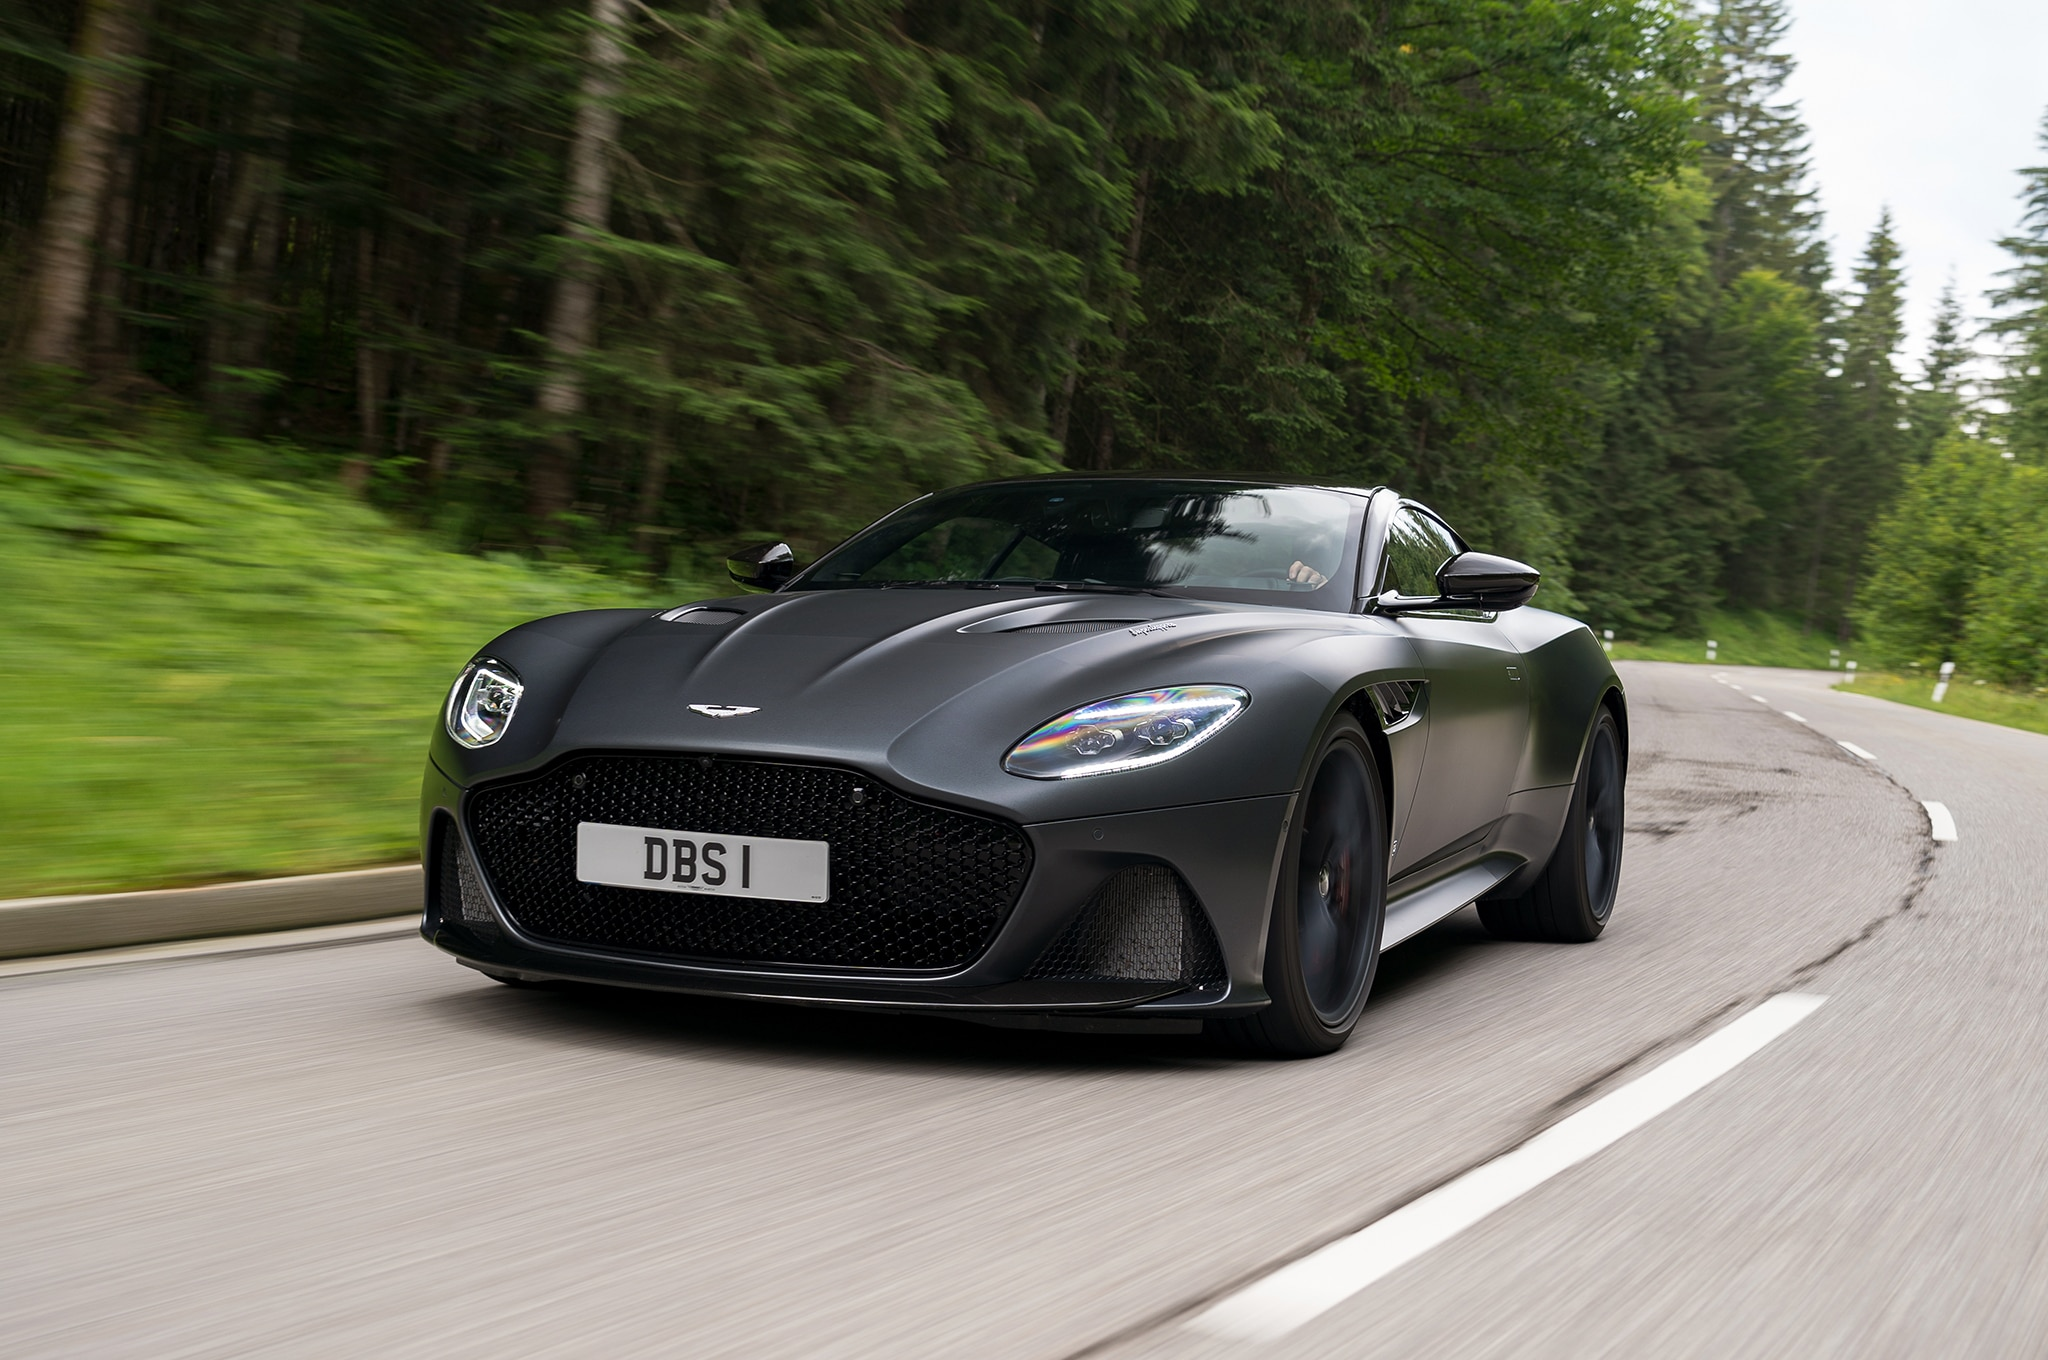 2019 Aston Martin DBS Superleggera Satin Xenon Grey 22